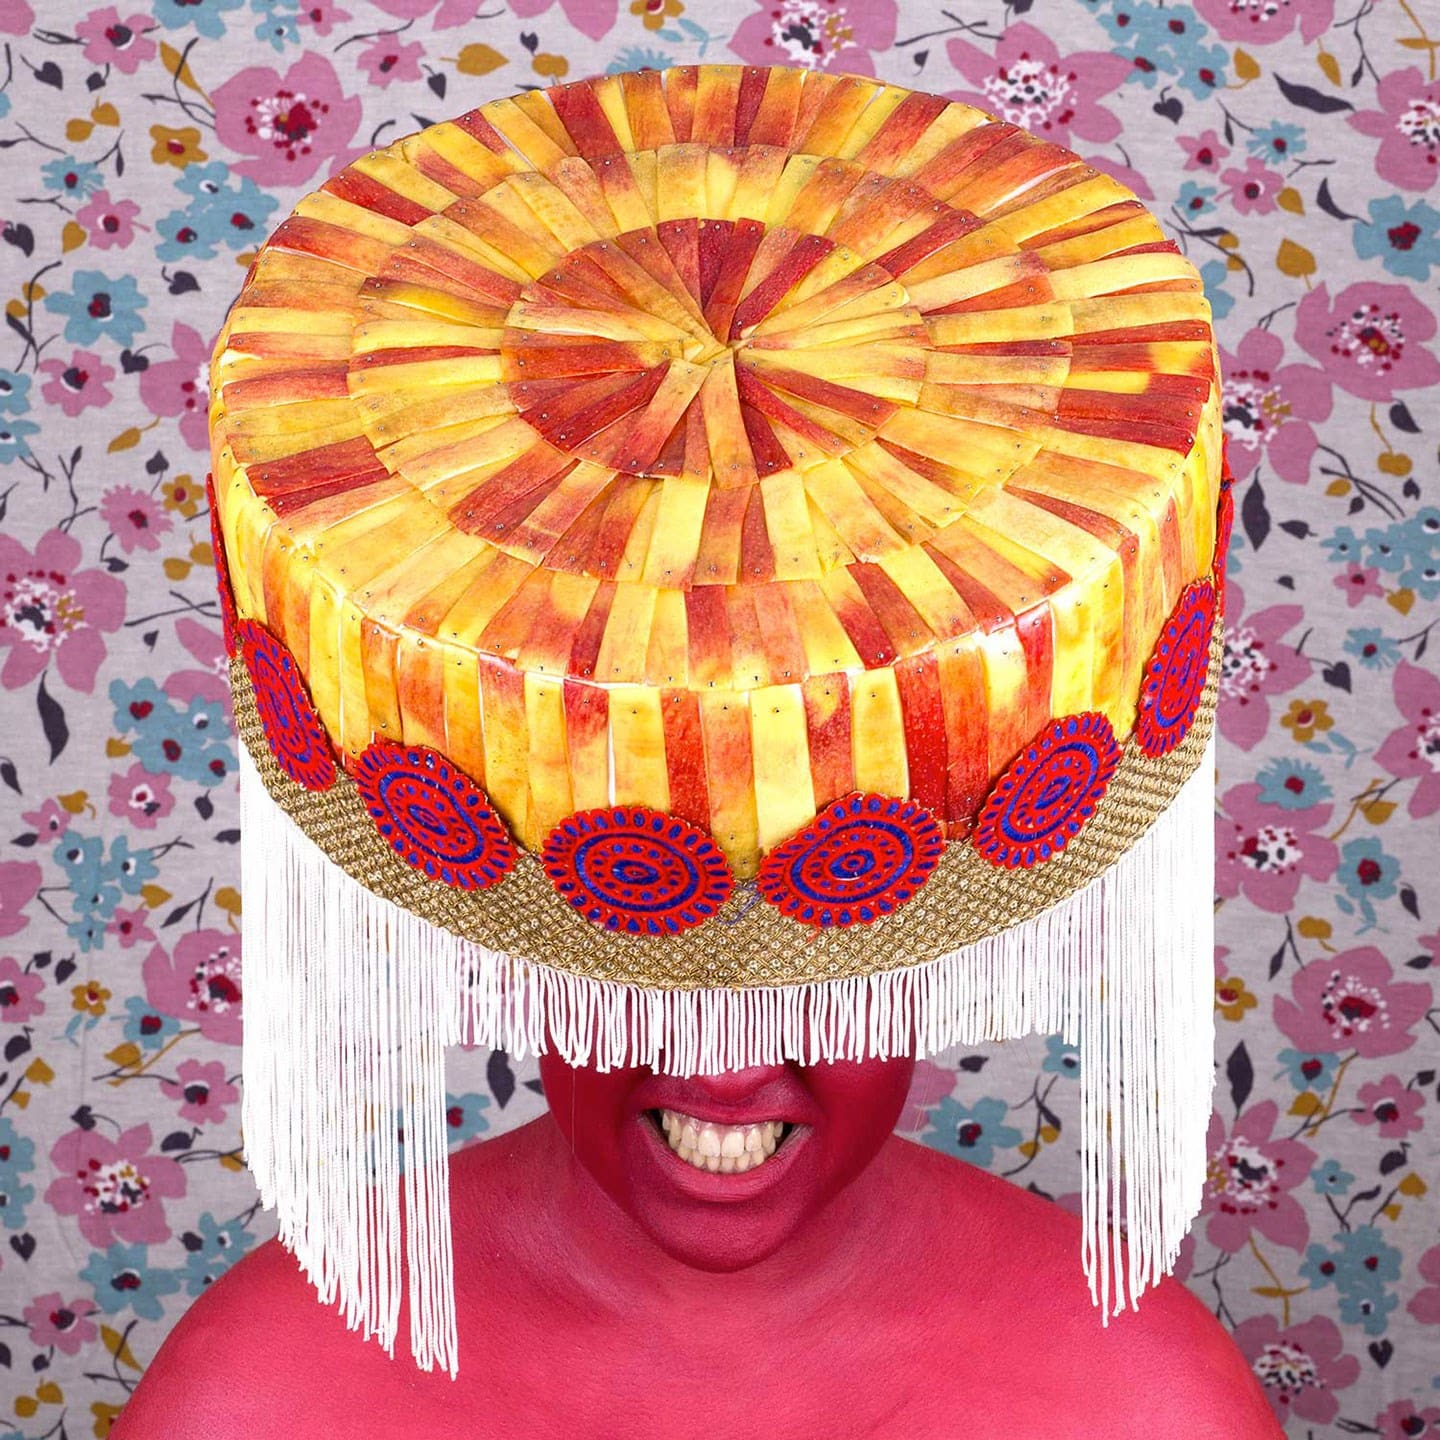 Pom Pom Girl | Cooking faces by Enora Lalet